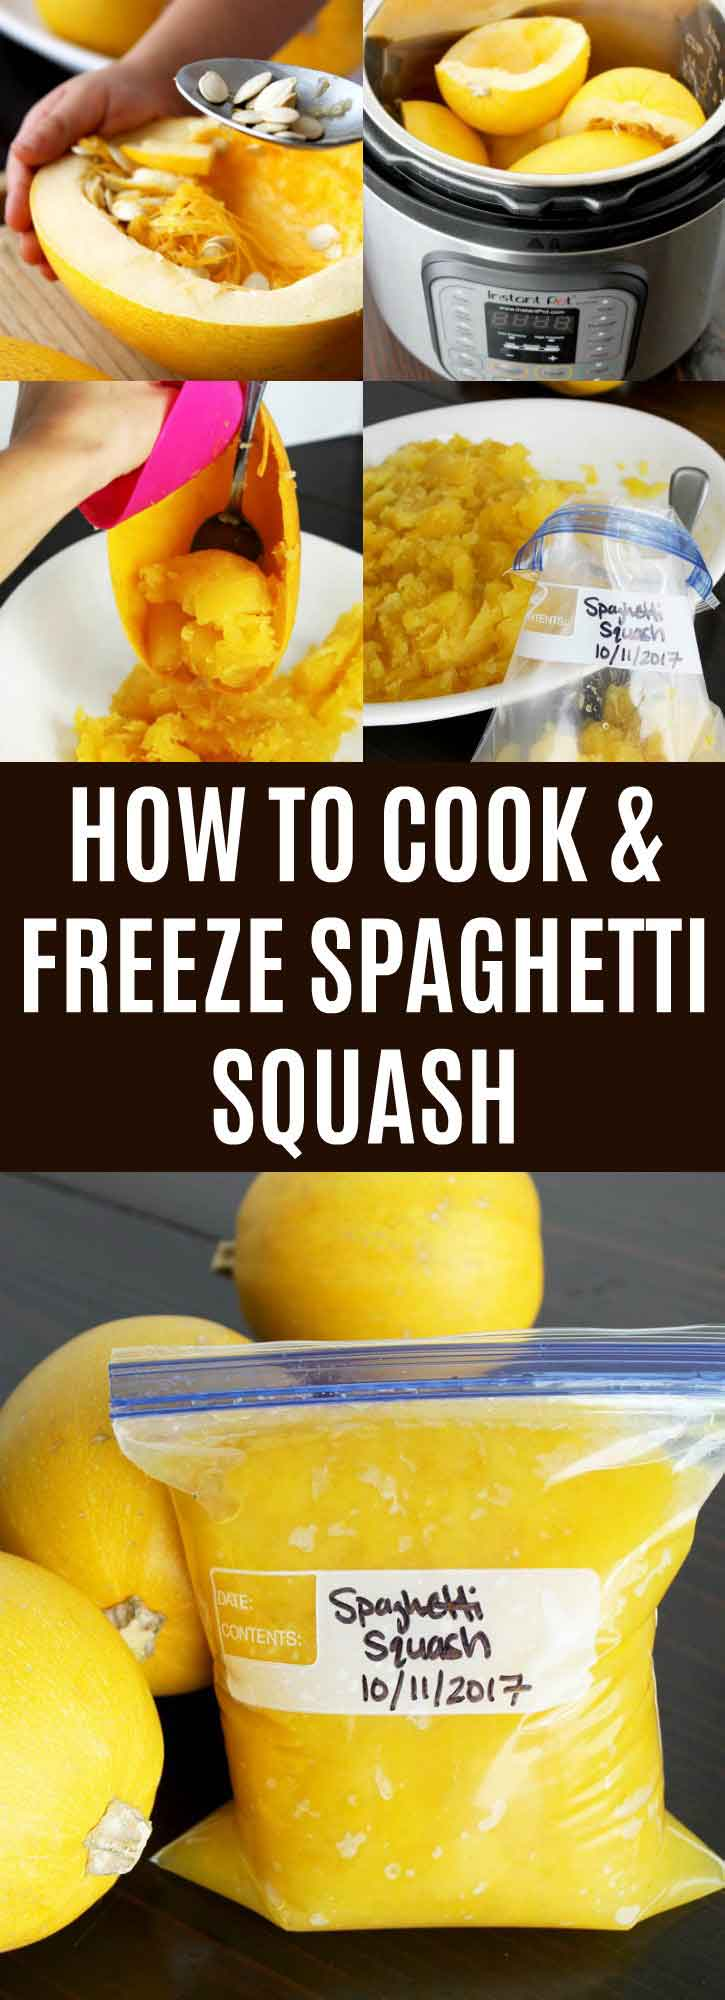 how to pre cook spaghetti